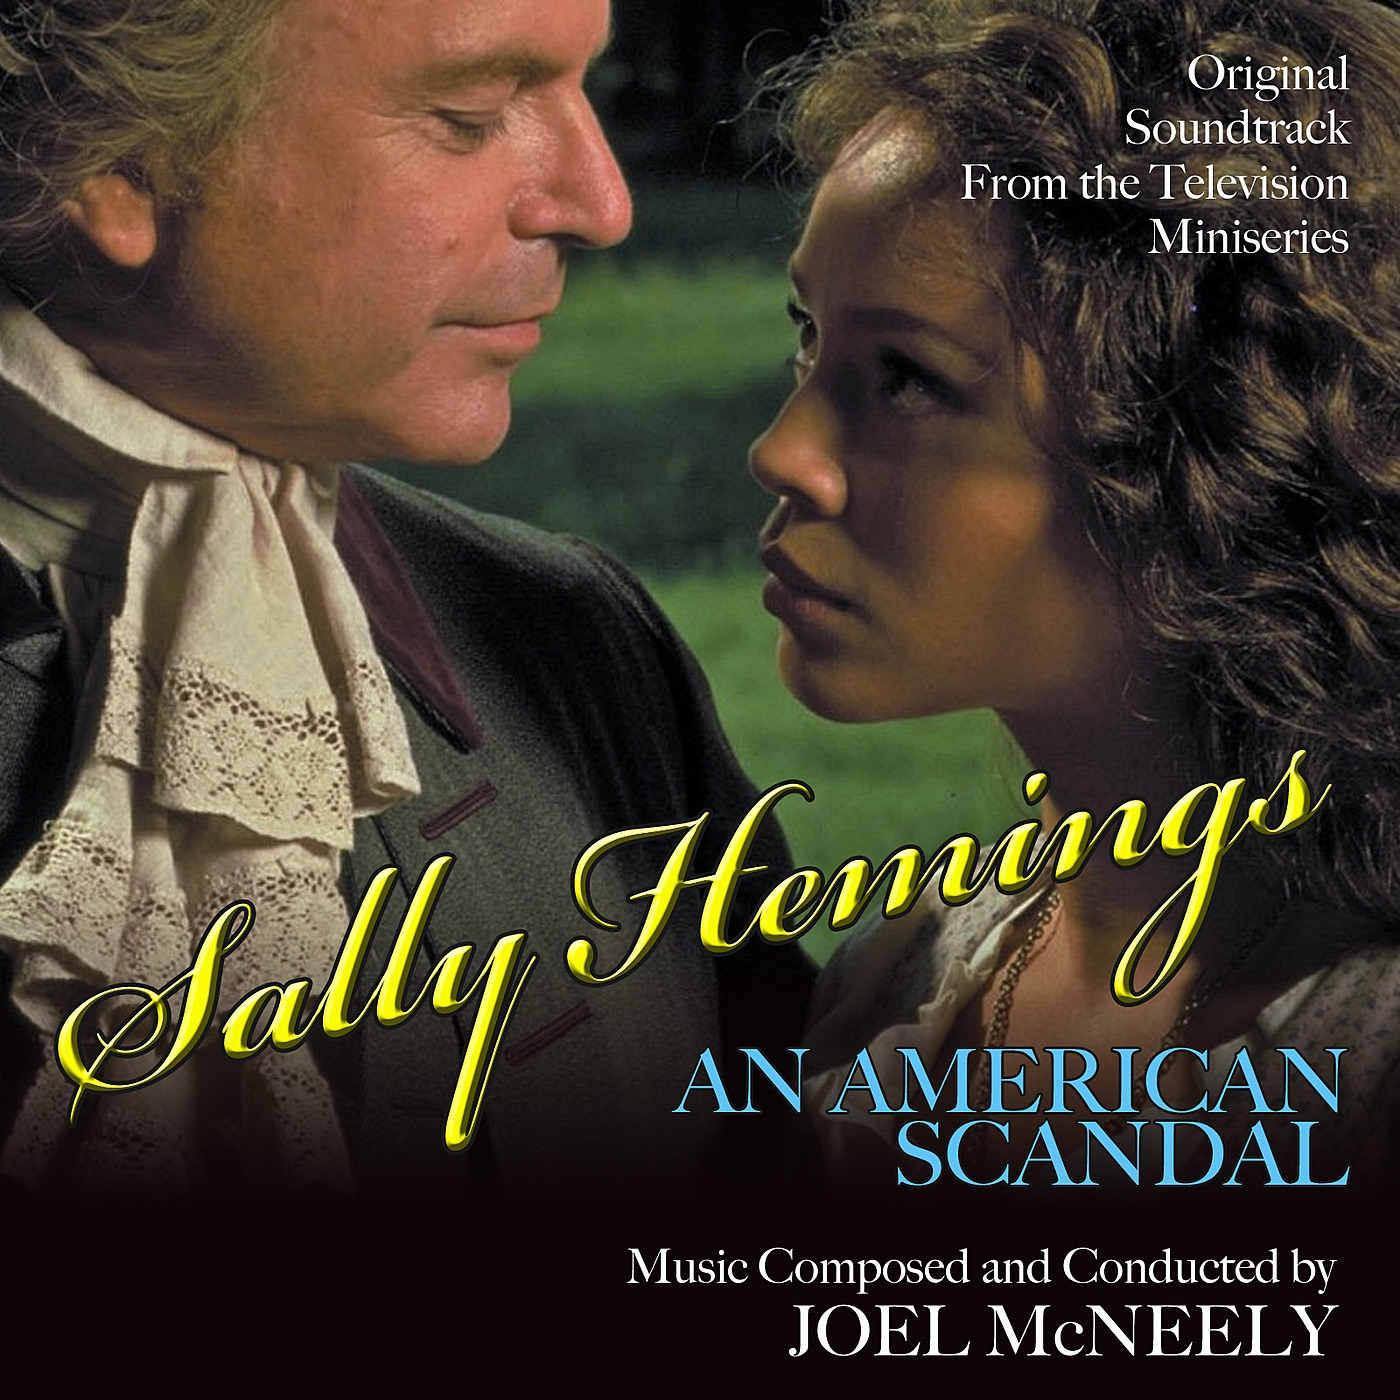 Sally Hemings: An American Scandal - Original Soundtrack from the Television Miniseries